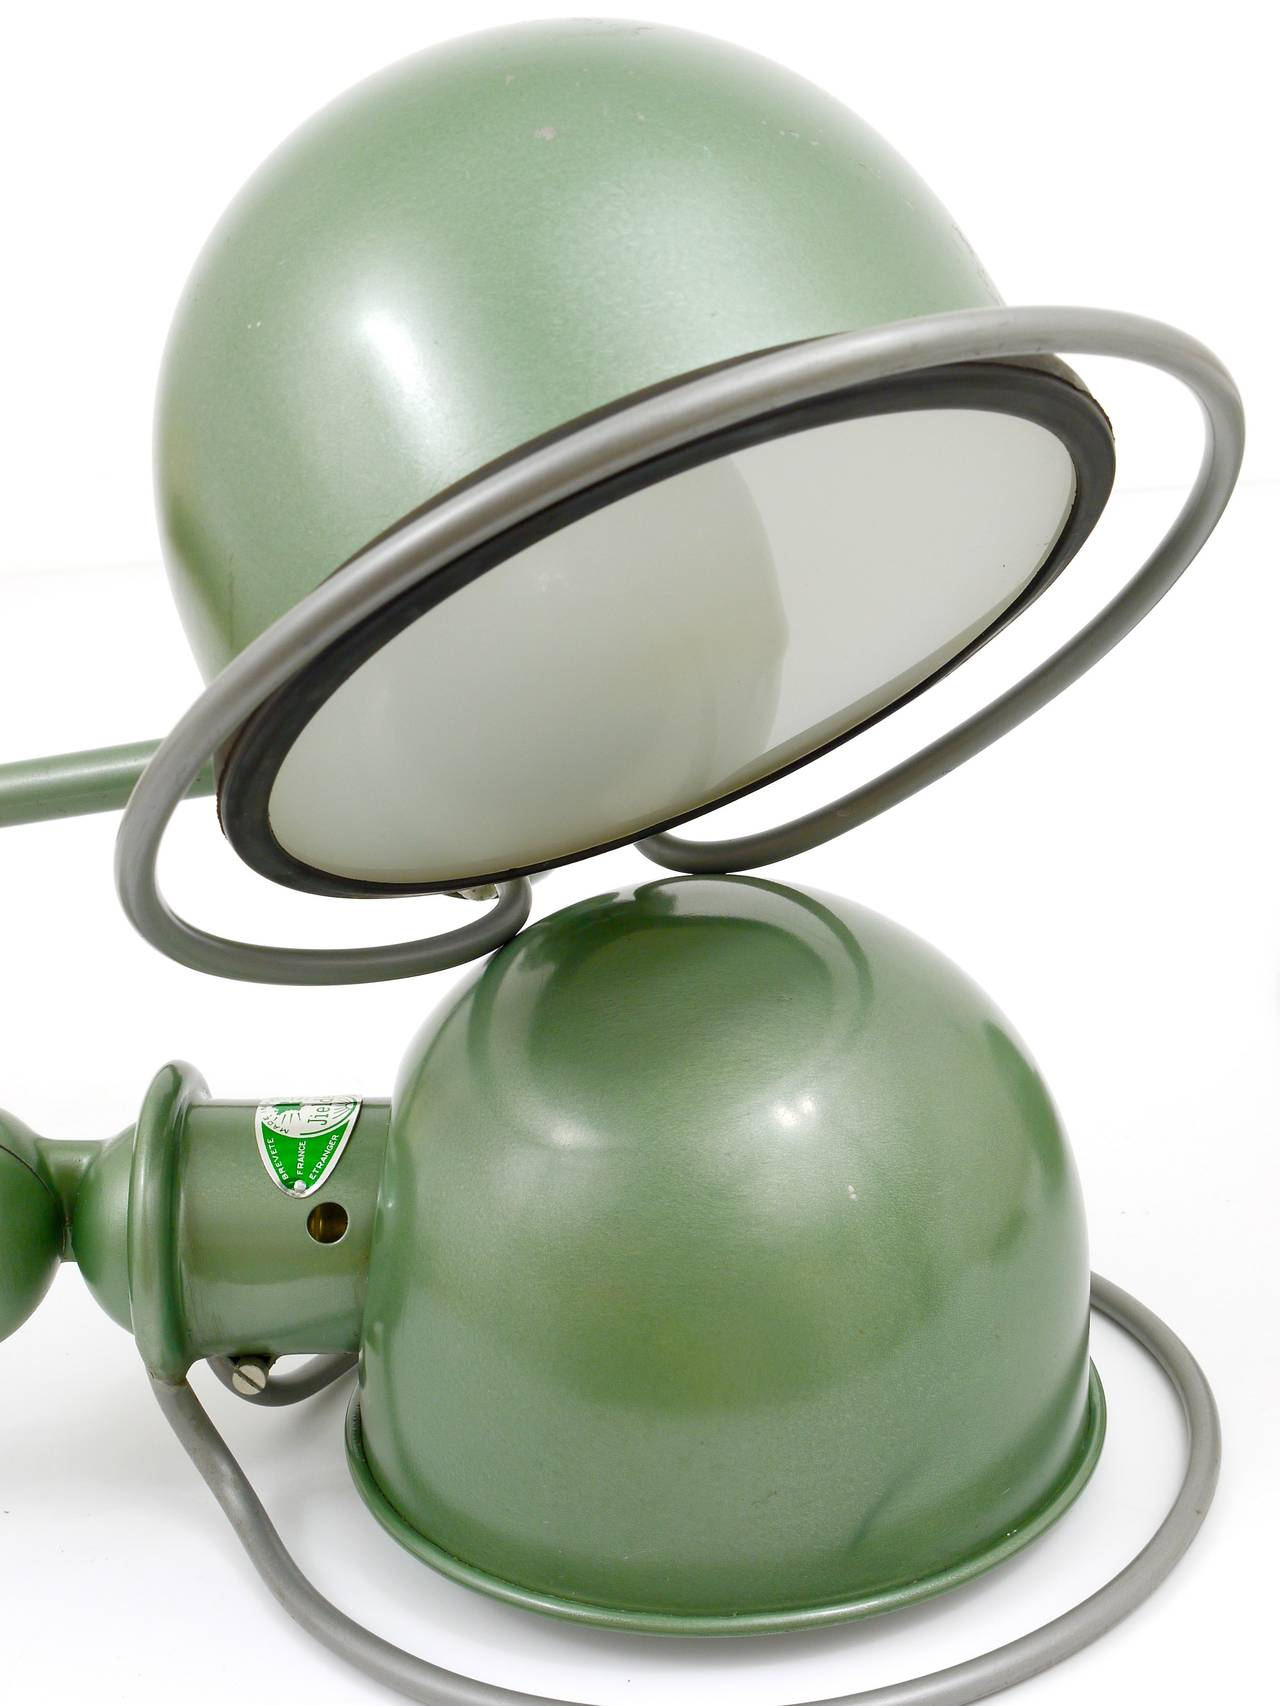 Up to two identical green clamp lamps by Jean Louis Domecq for Jielde Lyon/France. Unrestored vintage originals from the 1950s. They will be delivered with clamp bases, but you can use them also as sconces or mount them directly on the tabletop.